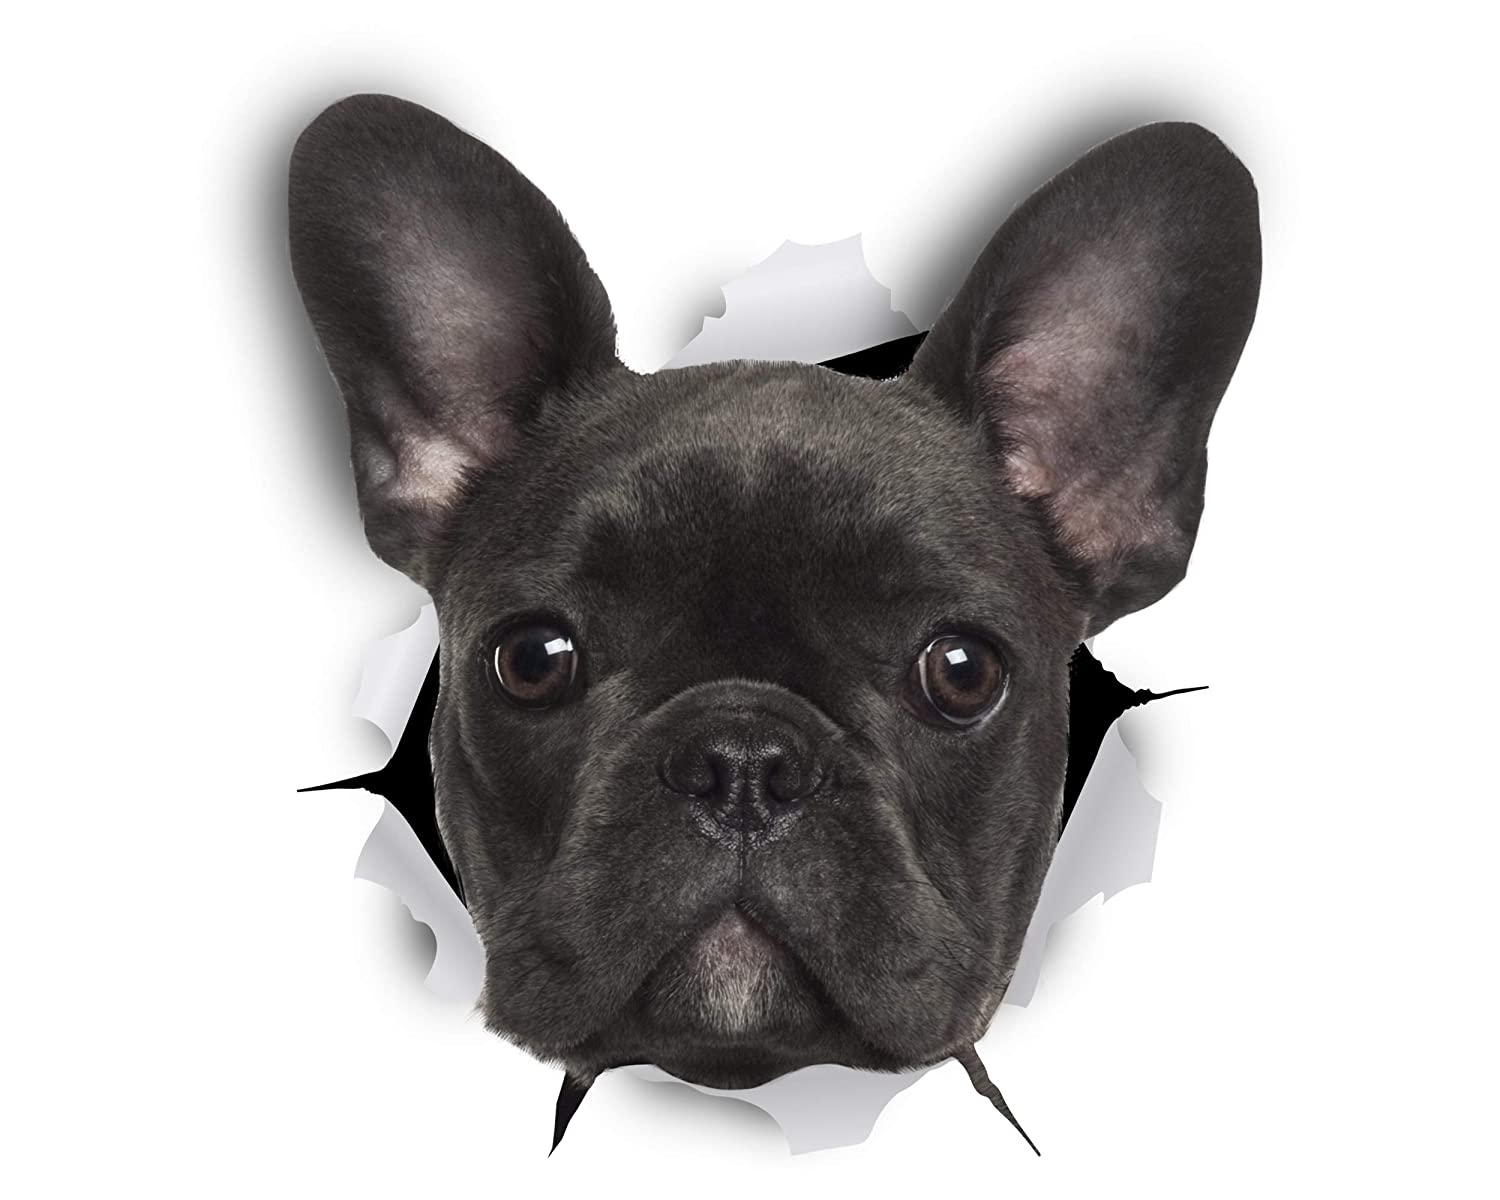 Winston & Bear French Bulldog 3D Dog Stickers - 2 Pack - French Bulldog Decor - Black French Bulldog Gifts for Wall, Fridge, Toilet and More - Retail ...